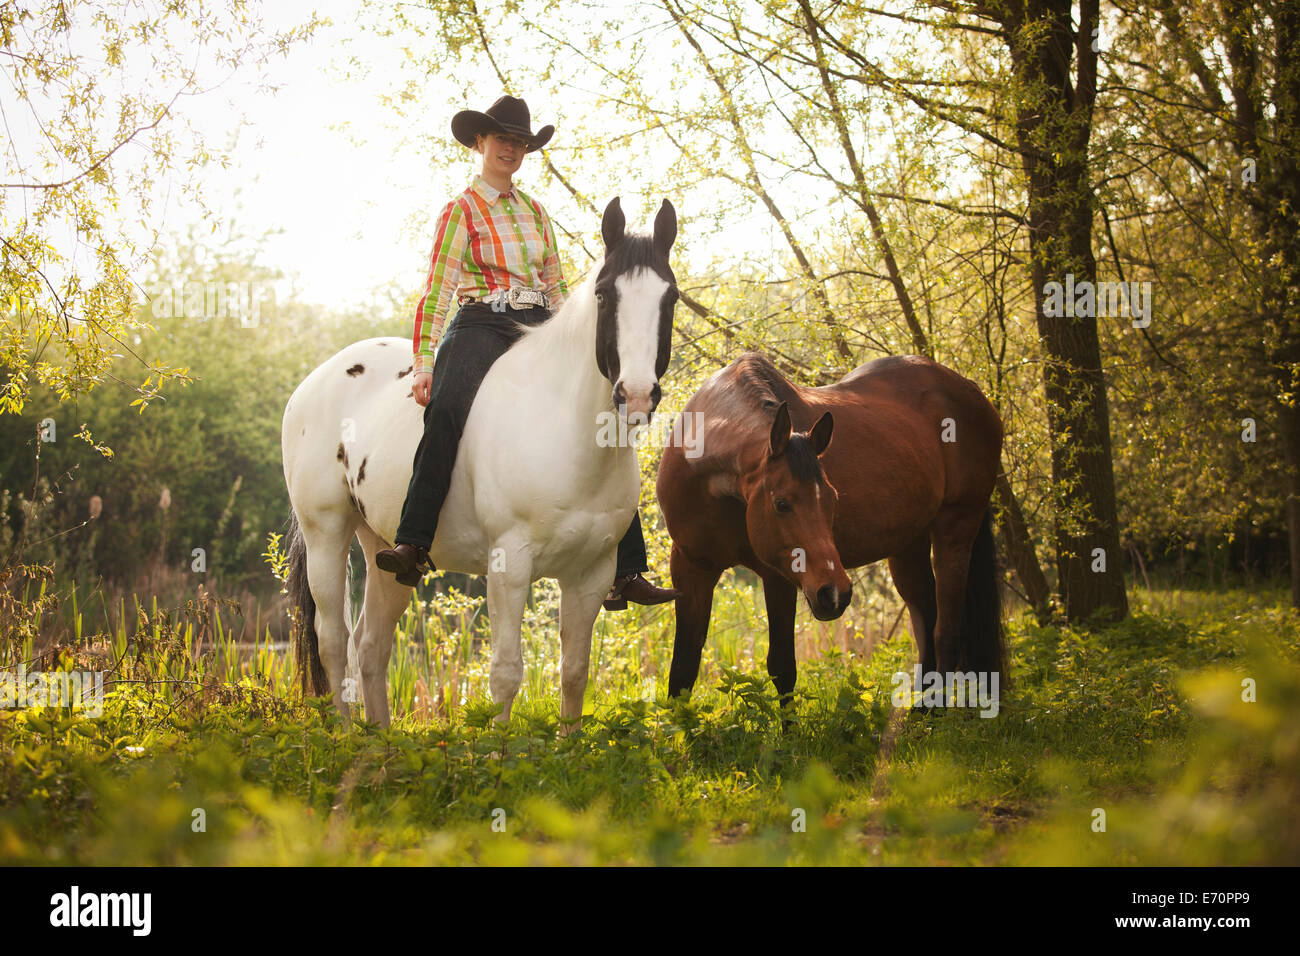 Female Western Rider On A Paint Horse Black Tobiano Colour Pattern Stock Photo Alamy